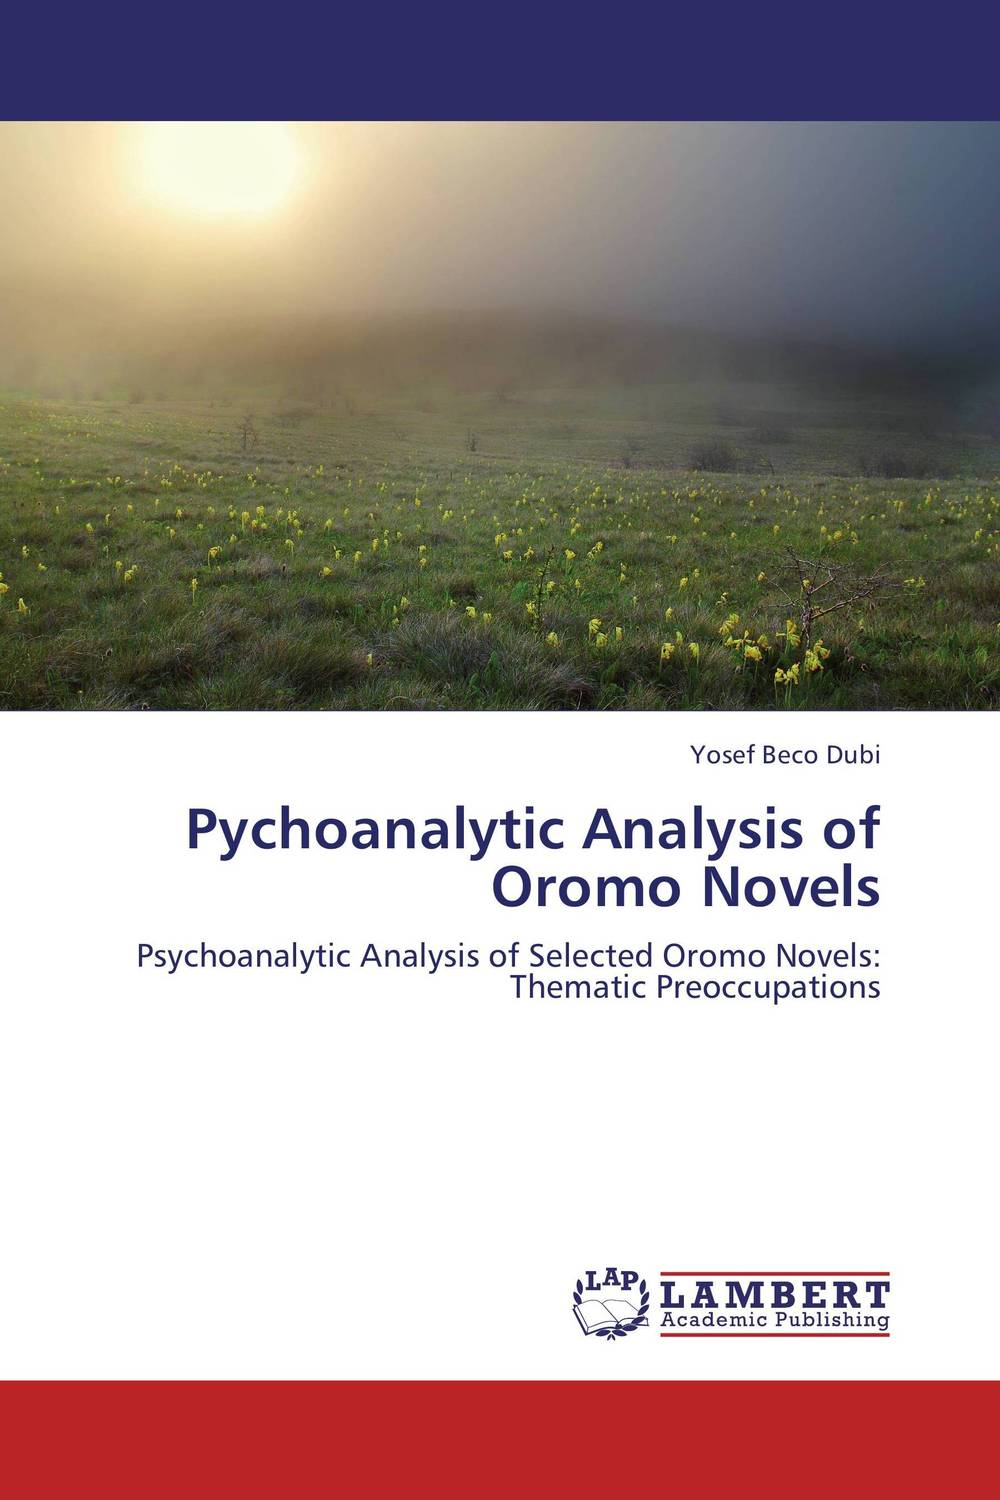 Pychoanalytic Analysis of Oromo Novels the common link